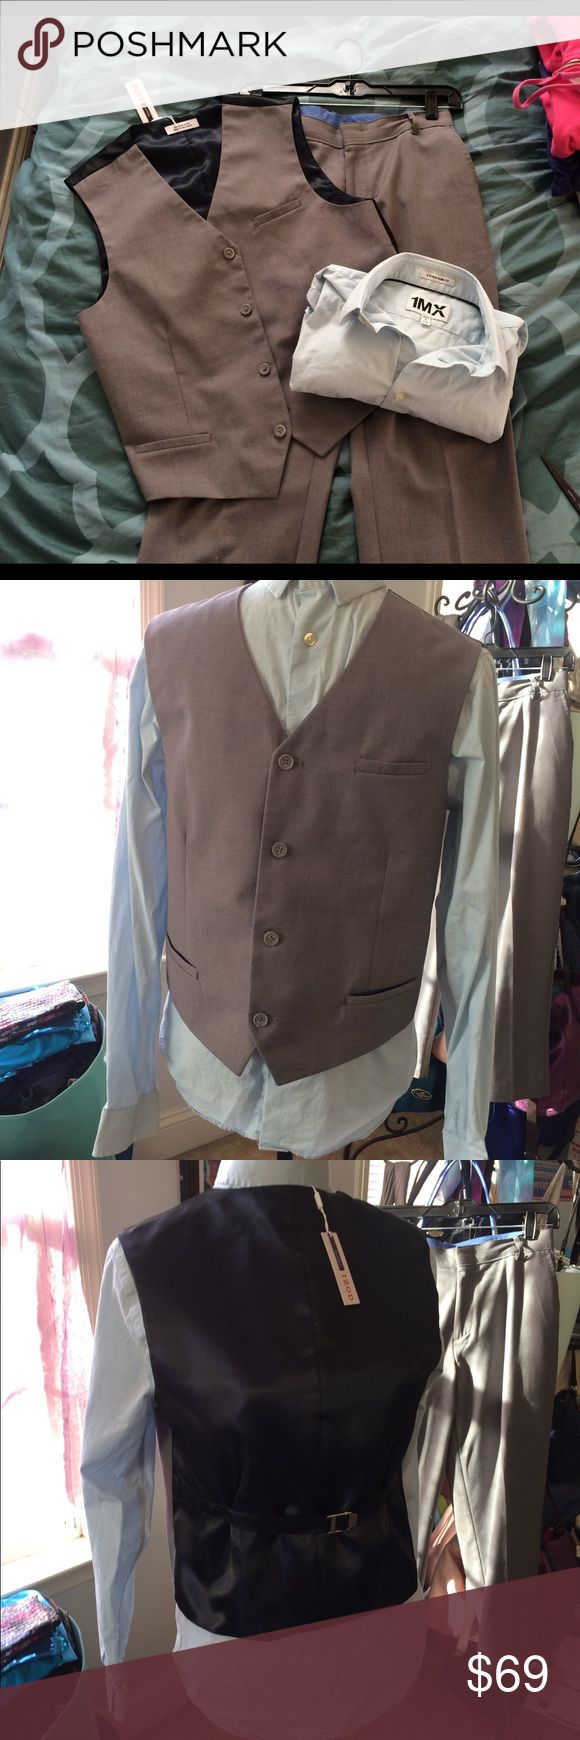 """Boys 3 piece suit with vest worn once! Boys 3 piece suit with vest worn once! Grey slacks, grey vest with shark tail blue back, and blue button up dress shirt. I will throw in a tie with the set! In perfect condition! Slacks are 24"""" inseam 34"""" overall length and 32"""" waist! Izod Matching Sets"""